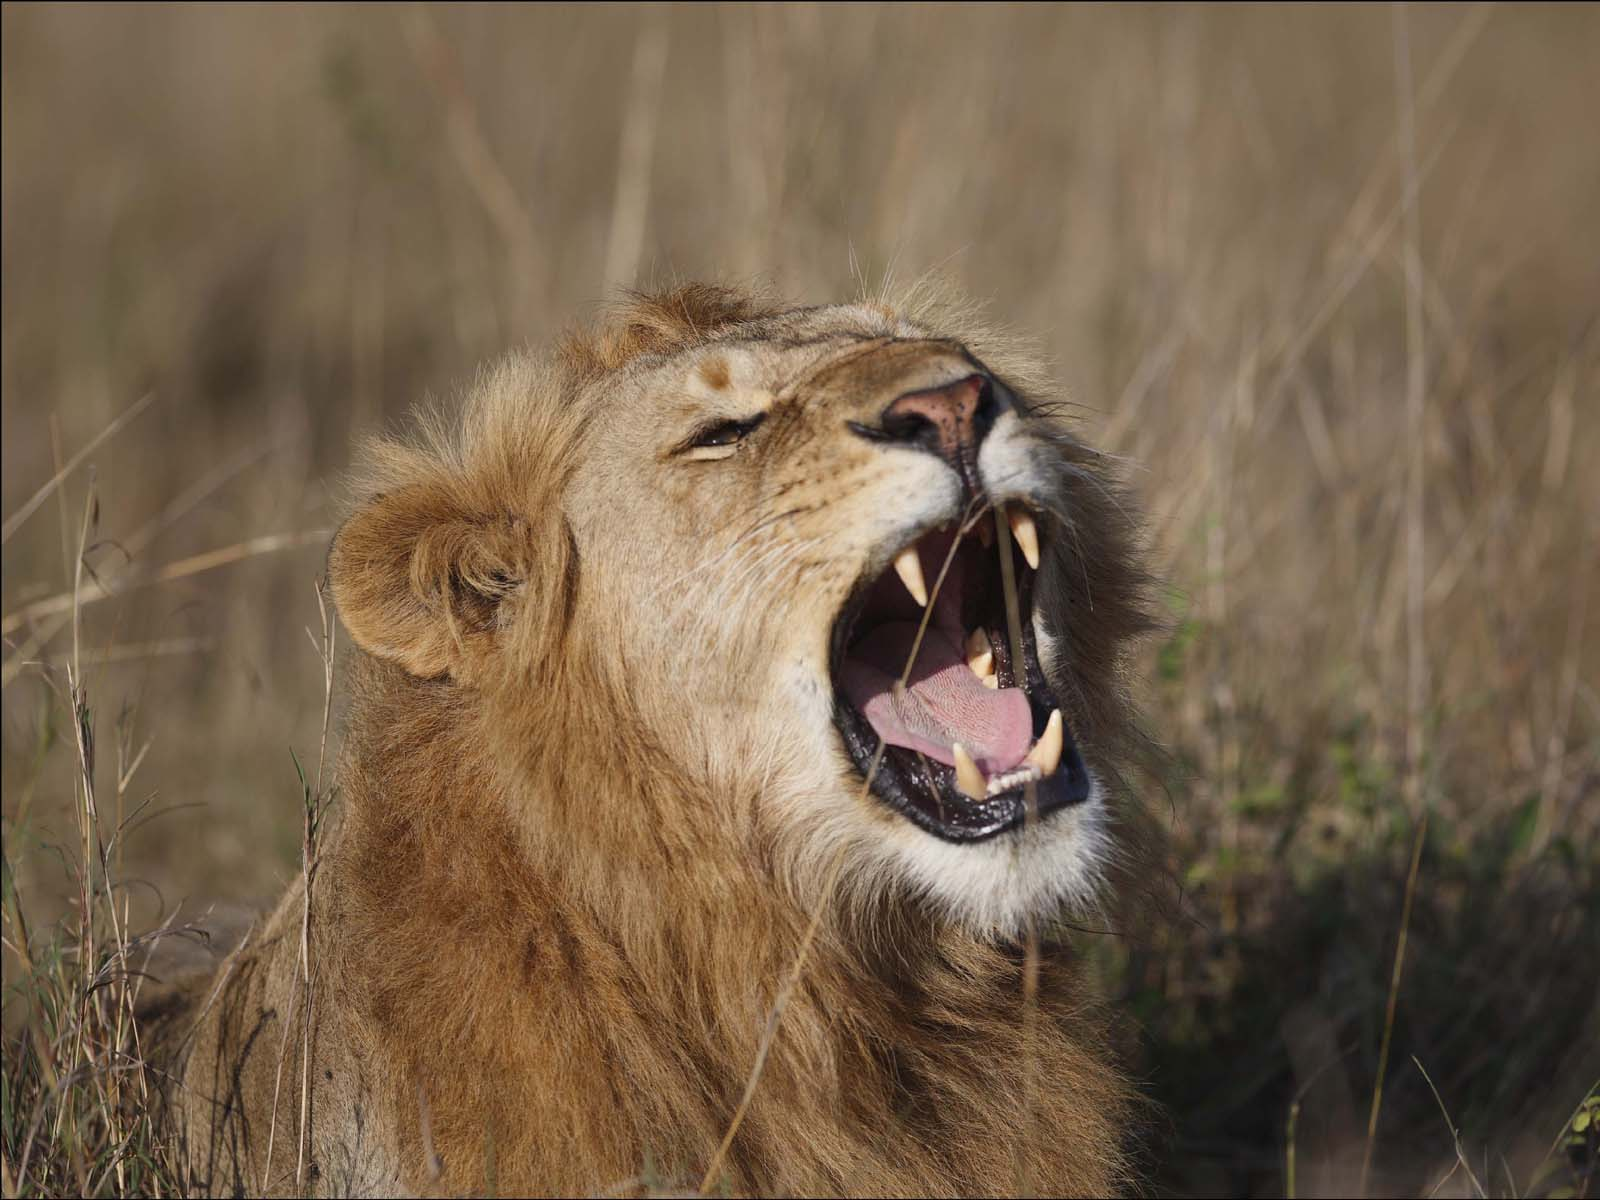 wallpapers: Lion Roaring Wallpapers - photo#21